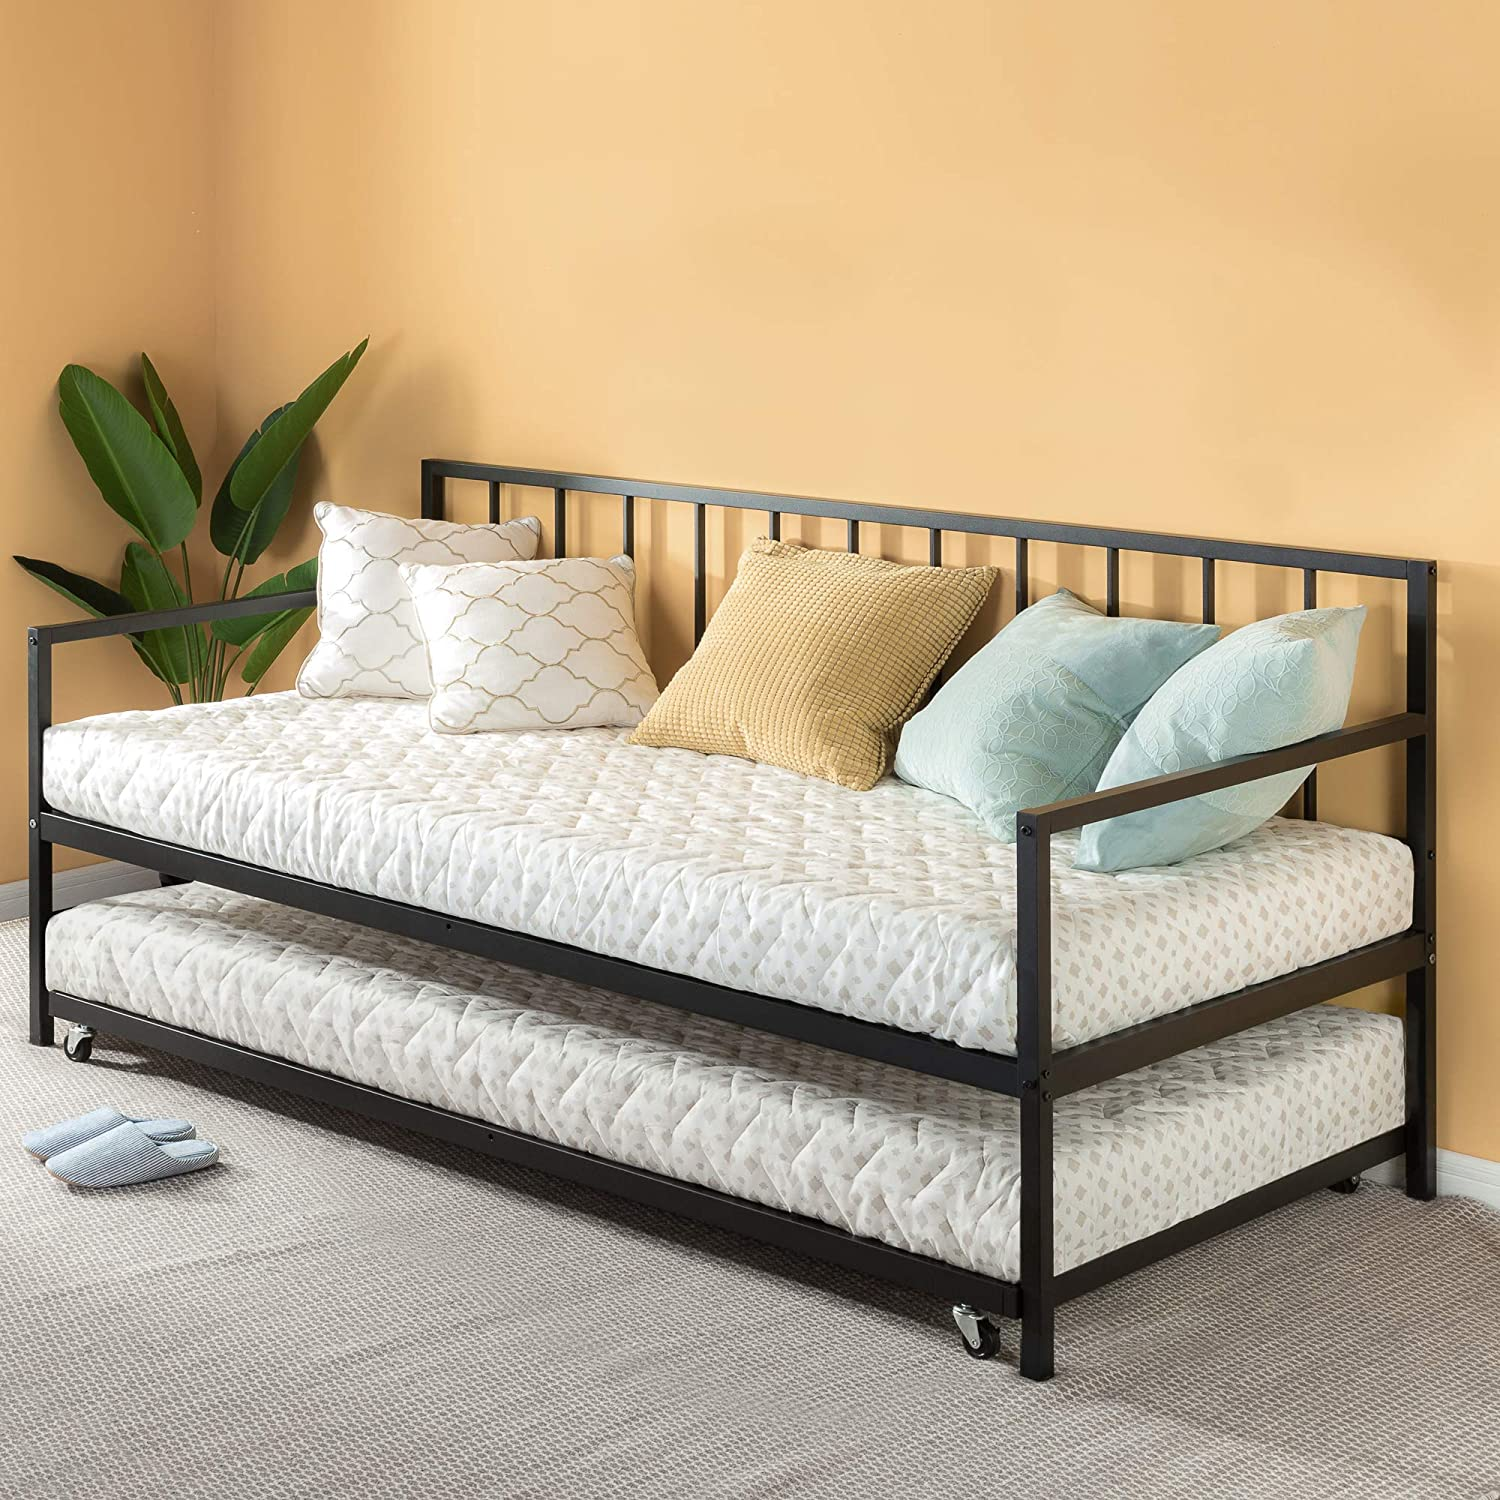 Day bed with a roll